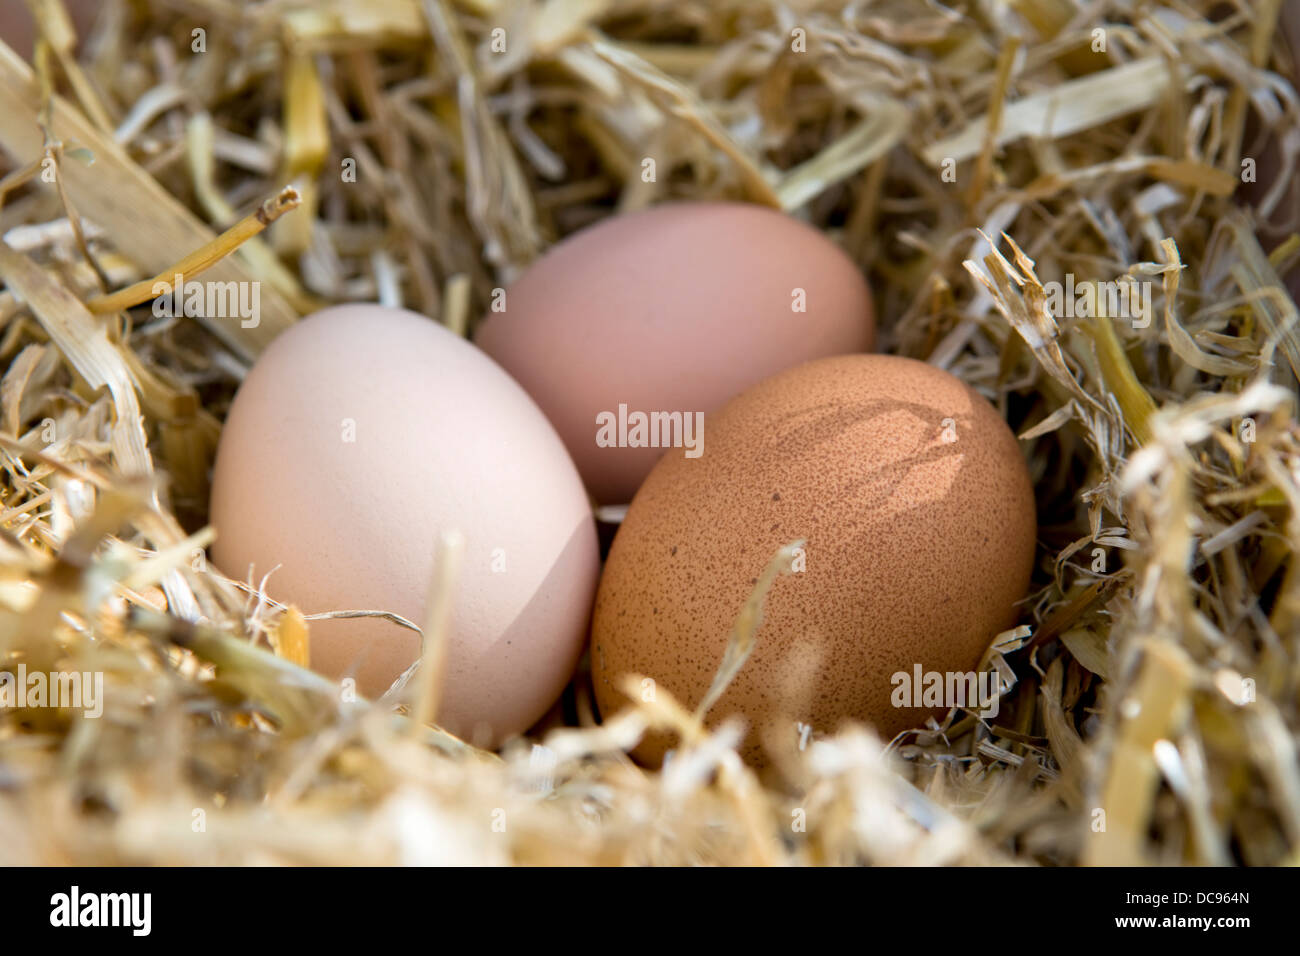 Free range eggs that have just been layed and collected in basket with straw - Stock Image